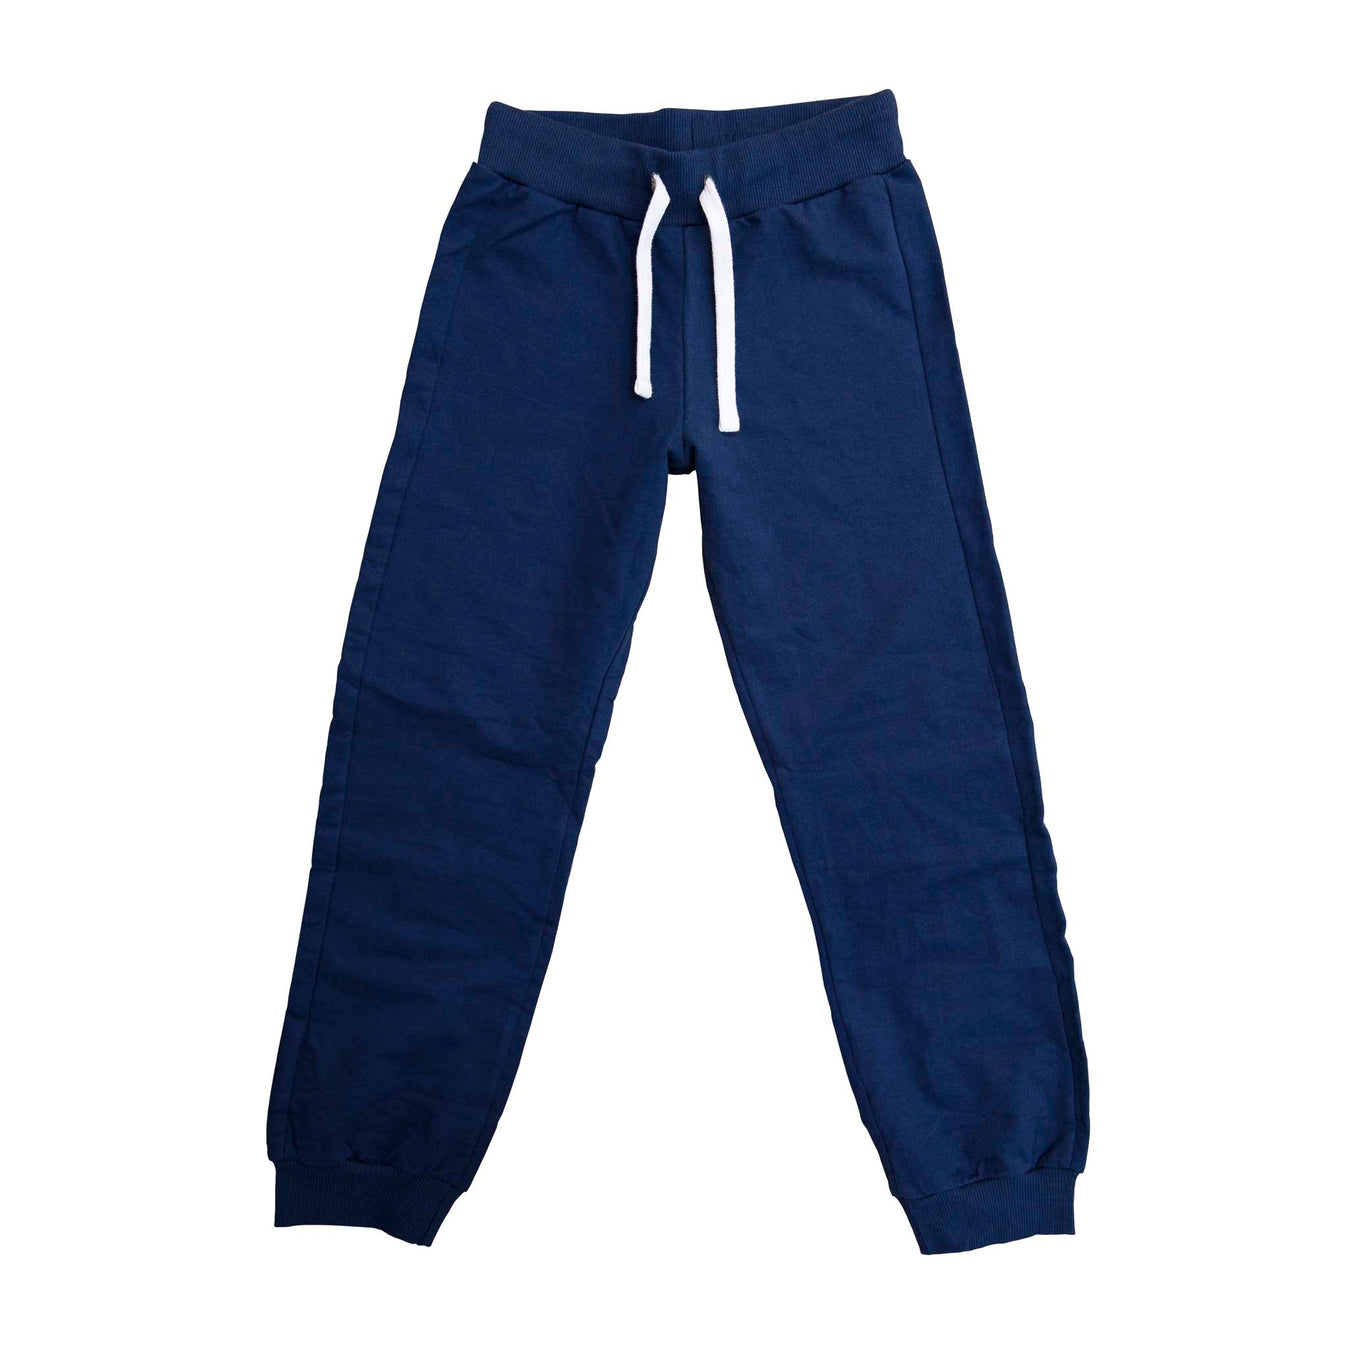 Men's Joggers & Sweatpants